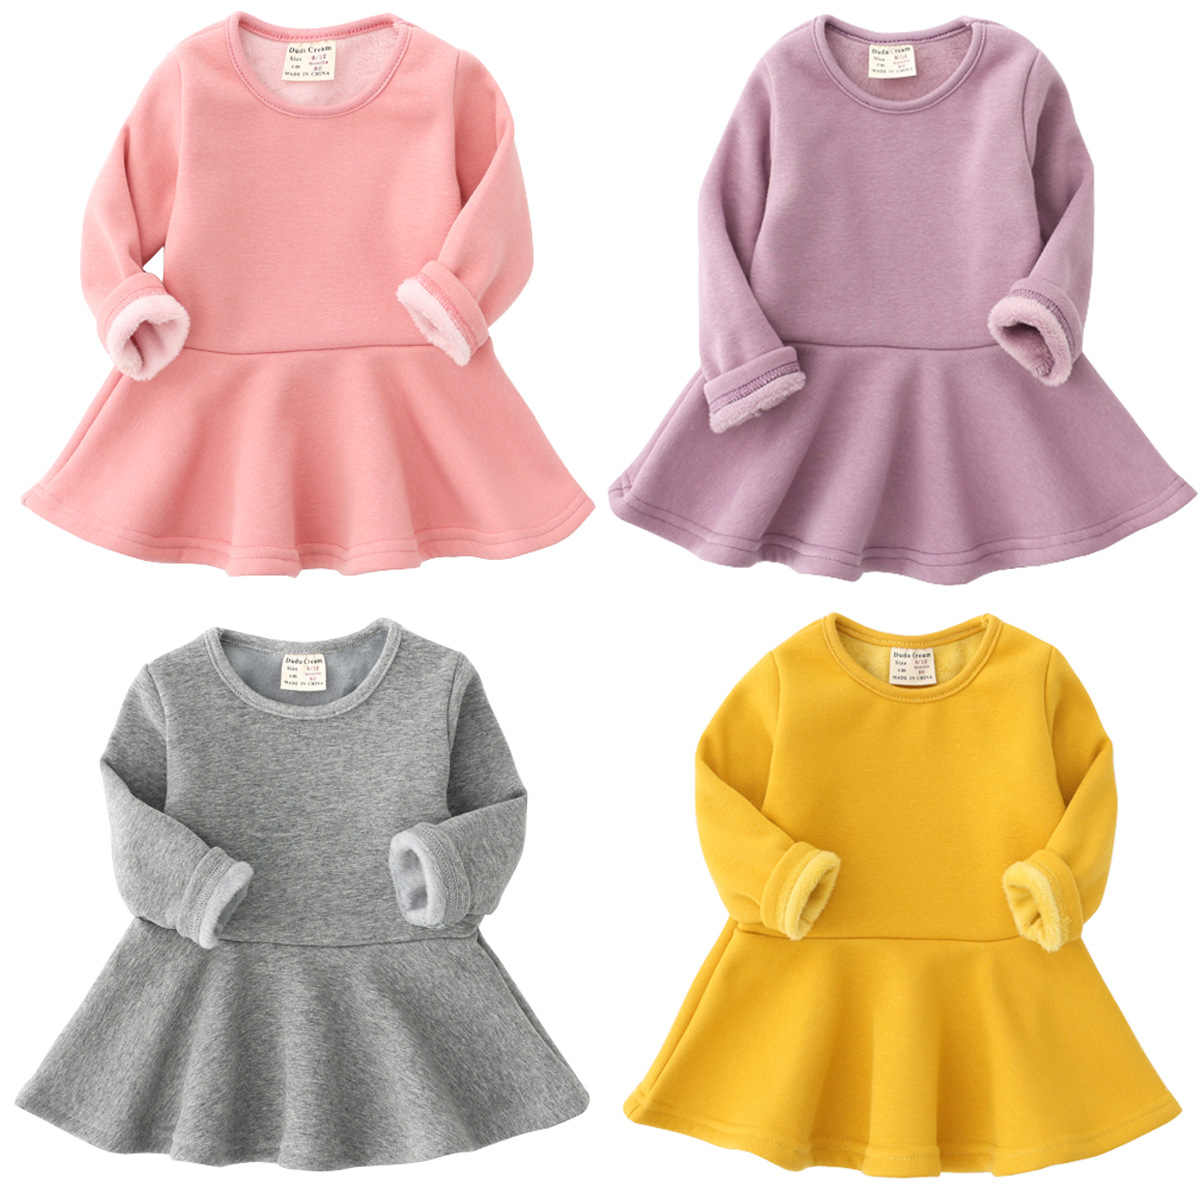 9da07f8a4c425 Baby Dresses For Girls Autumn Winter Long Sleeved Knit princess dress Lotus  Leaf Collar Pocket Doll Dress Girls Baby Clothing